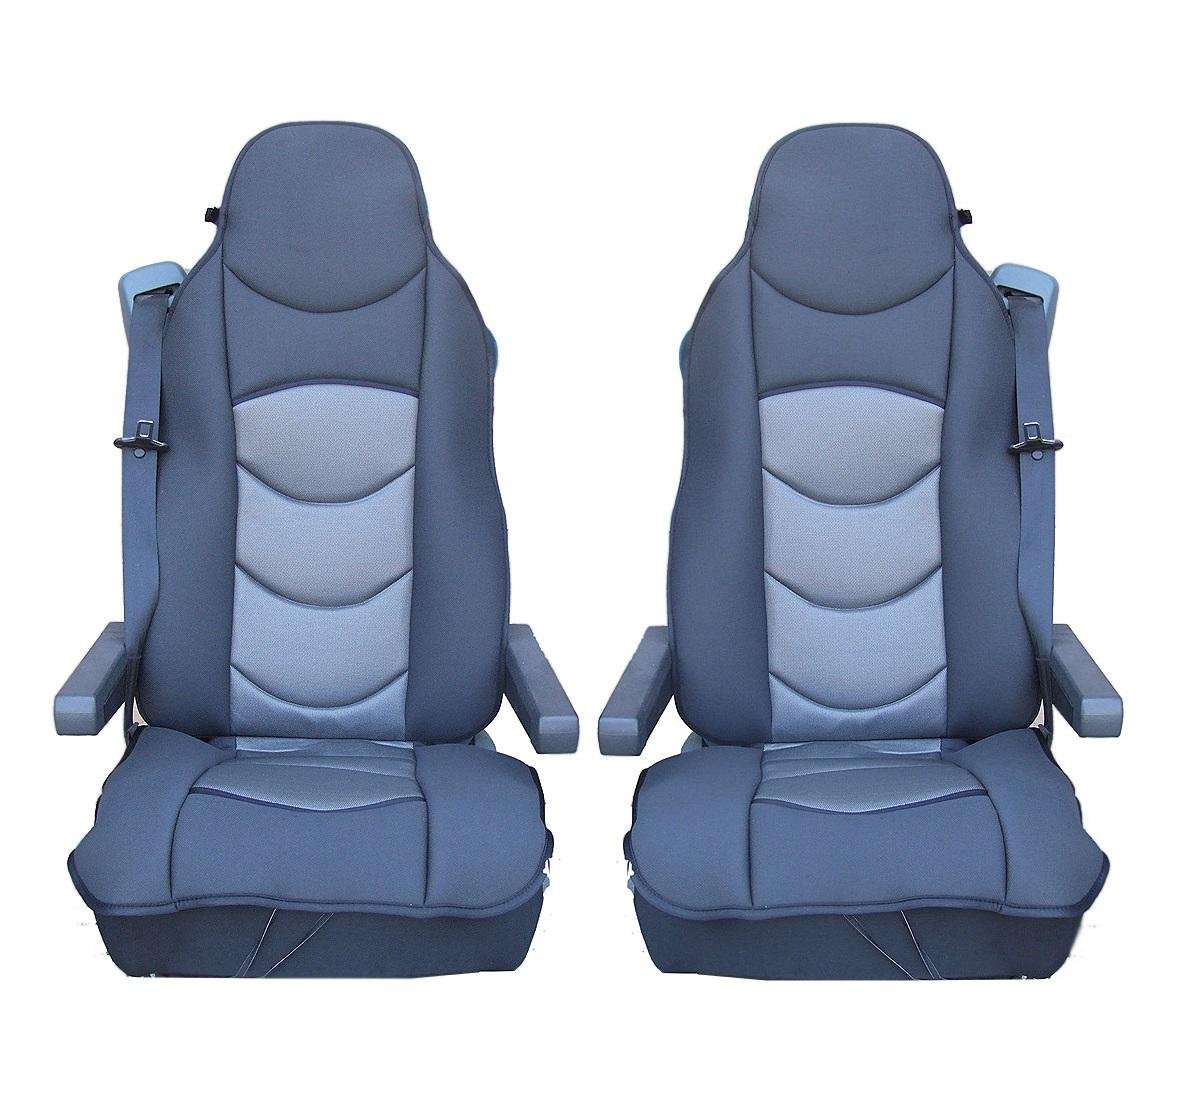 1x PREMIUM UNIVERSAL GREY COMFORT PADDED SEAT COVER CUSHIONED FOR TRUCK LORRY